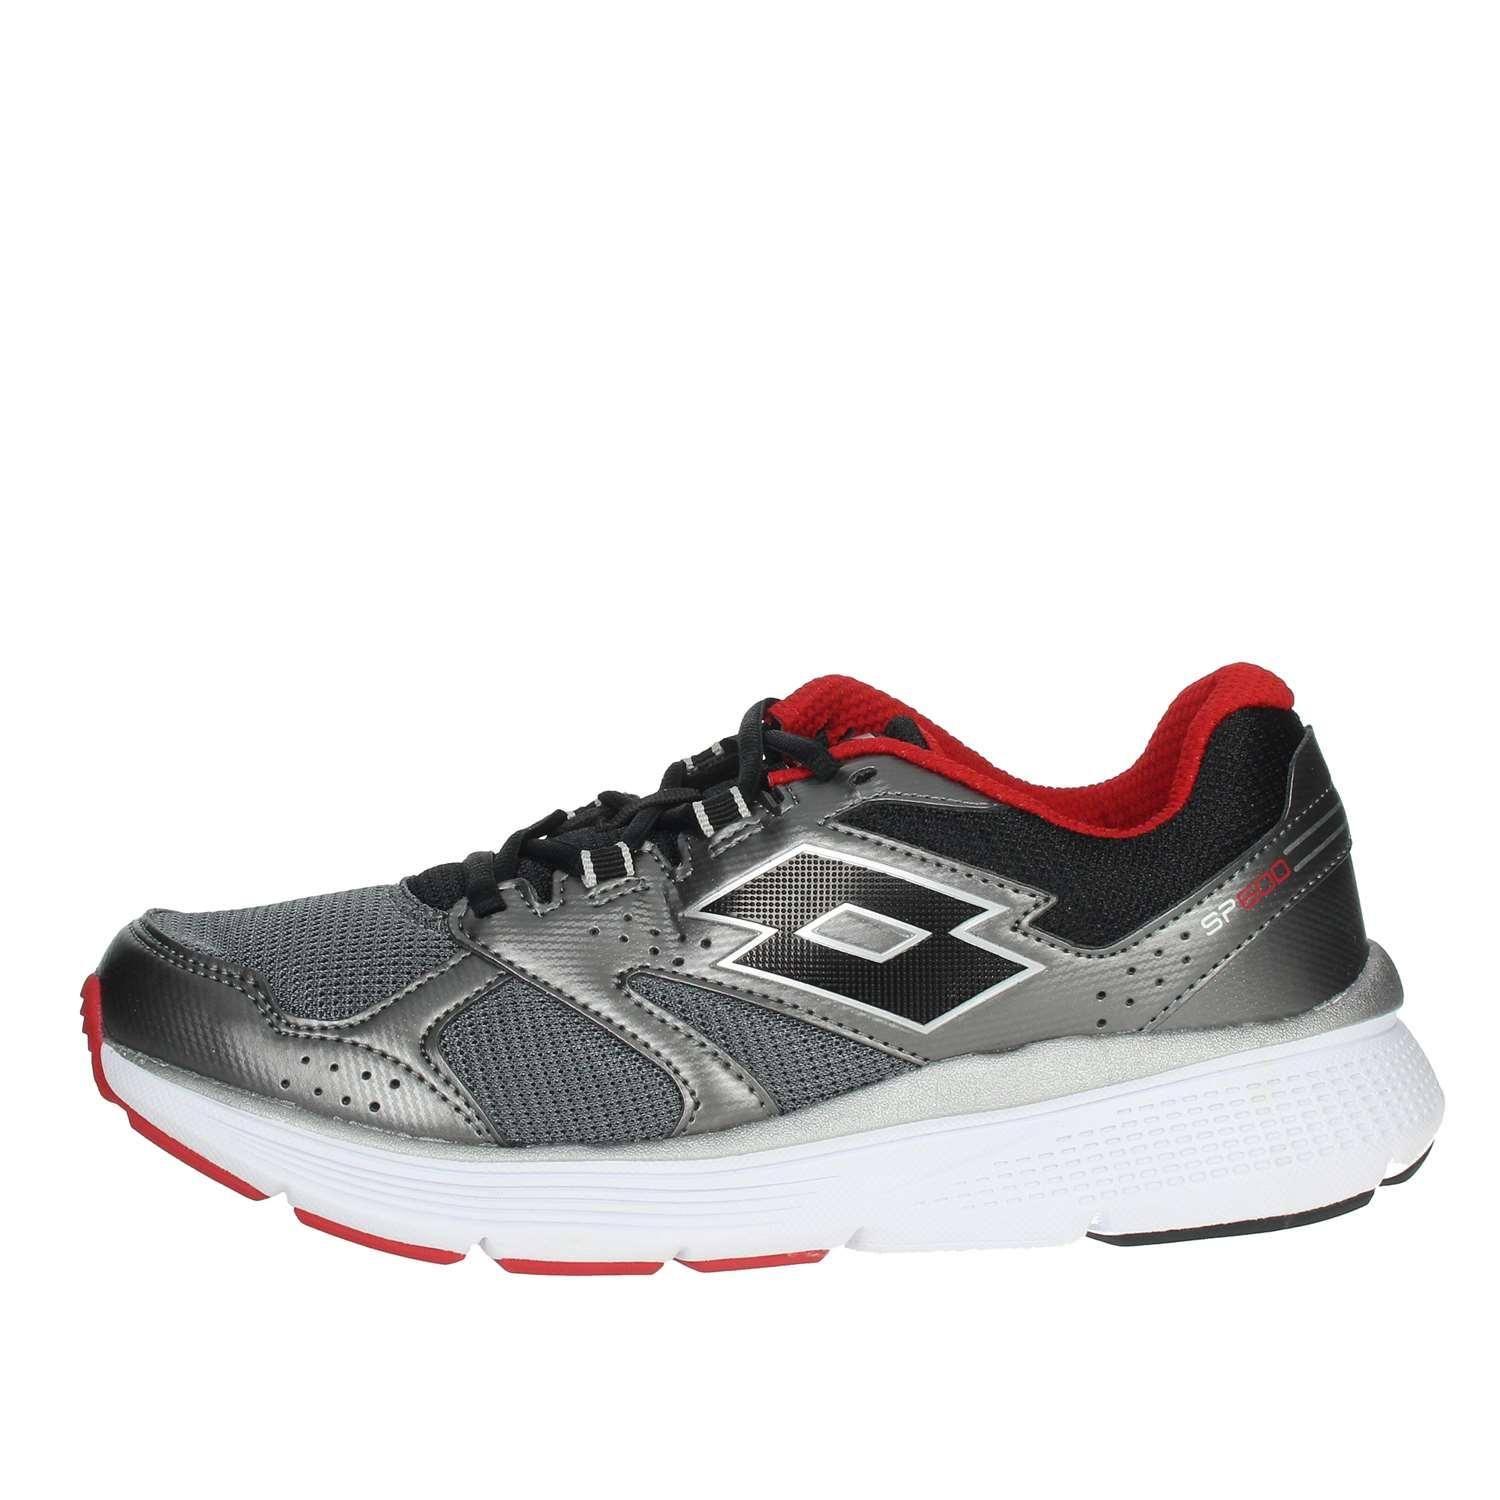 Zapatilla Running Lotto Speedride 600 VI. 211819 5D2. Gris/rojo